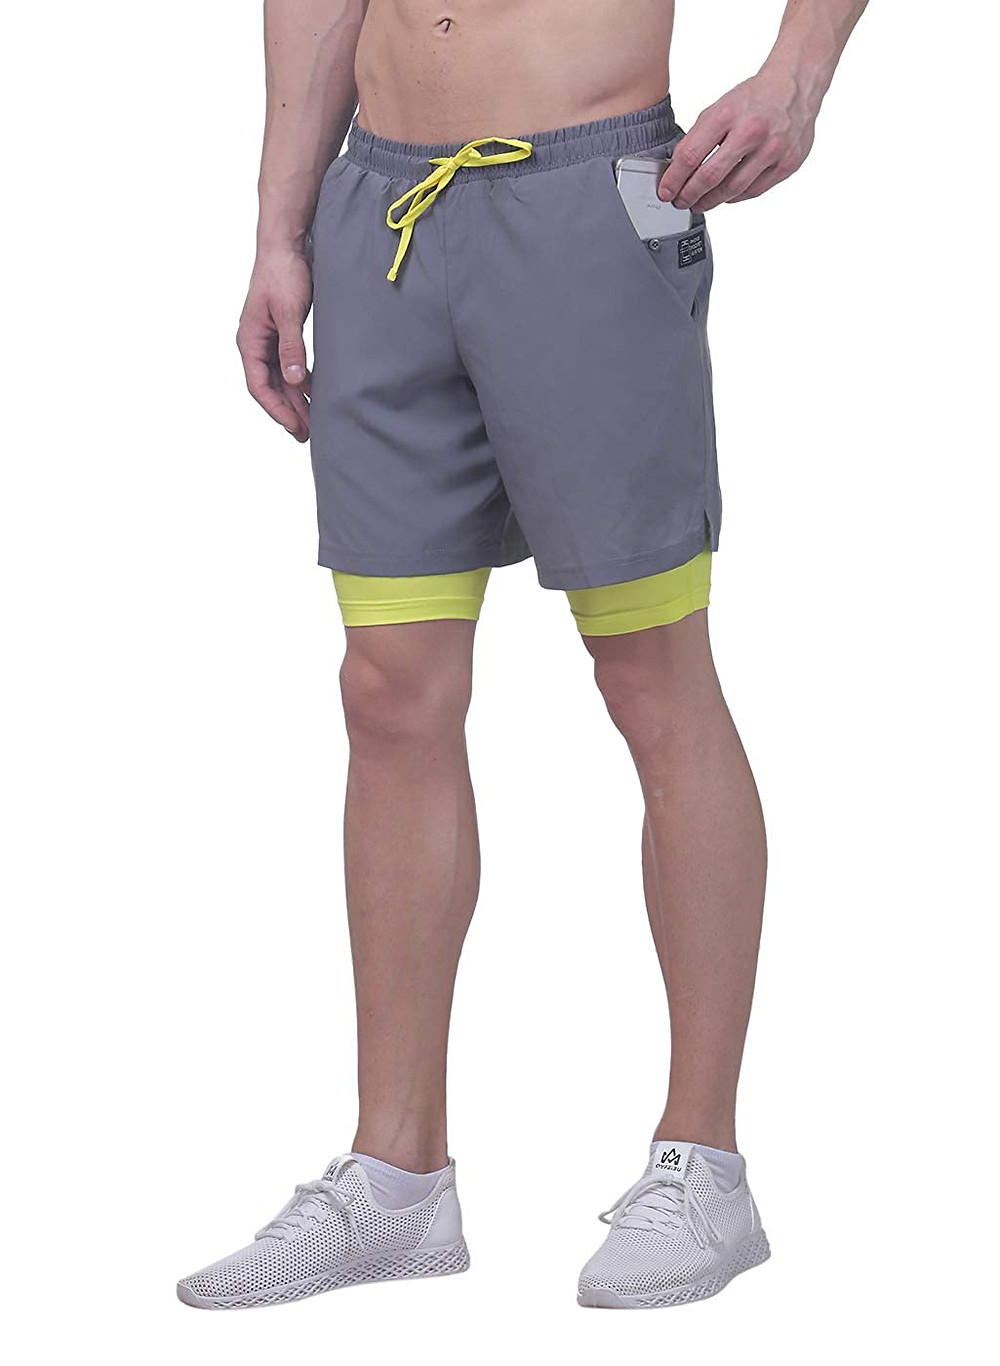 Revo TRUEREVO - Double Layered Sports Shorts with Phone Pocket for Men